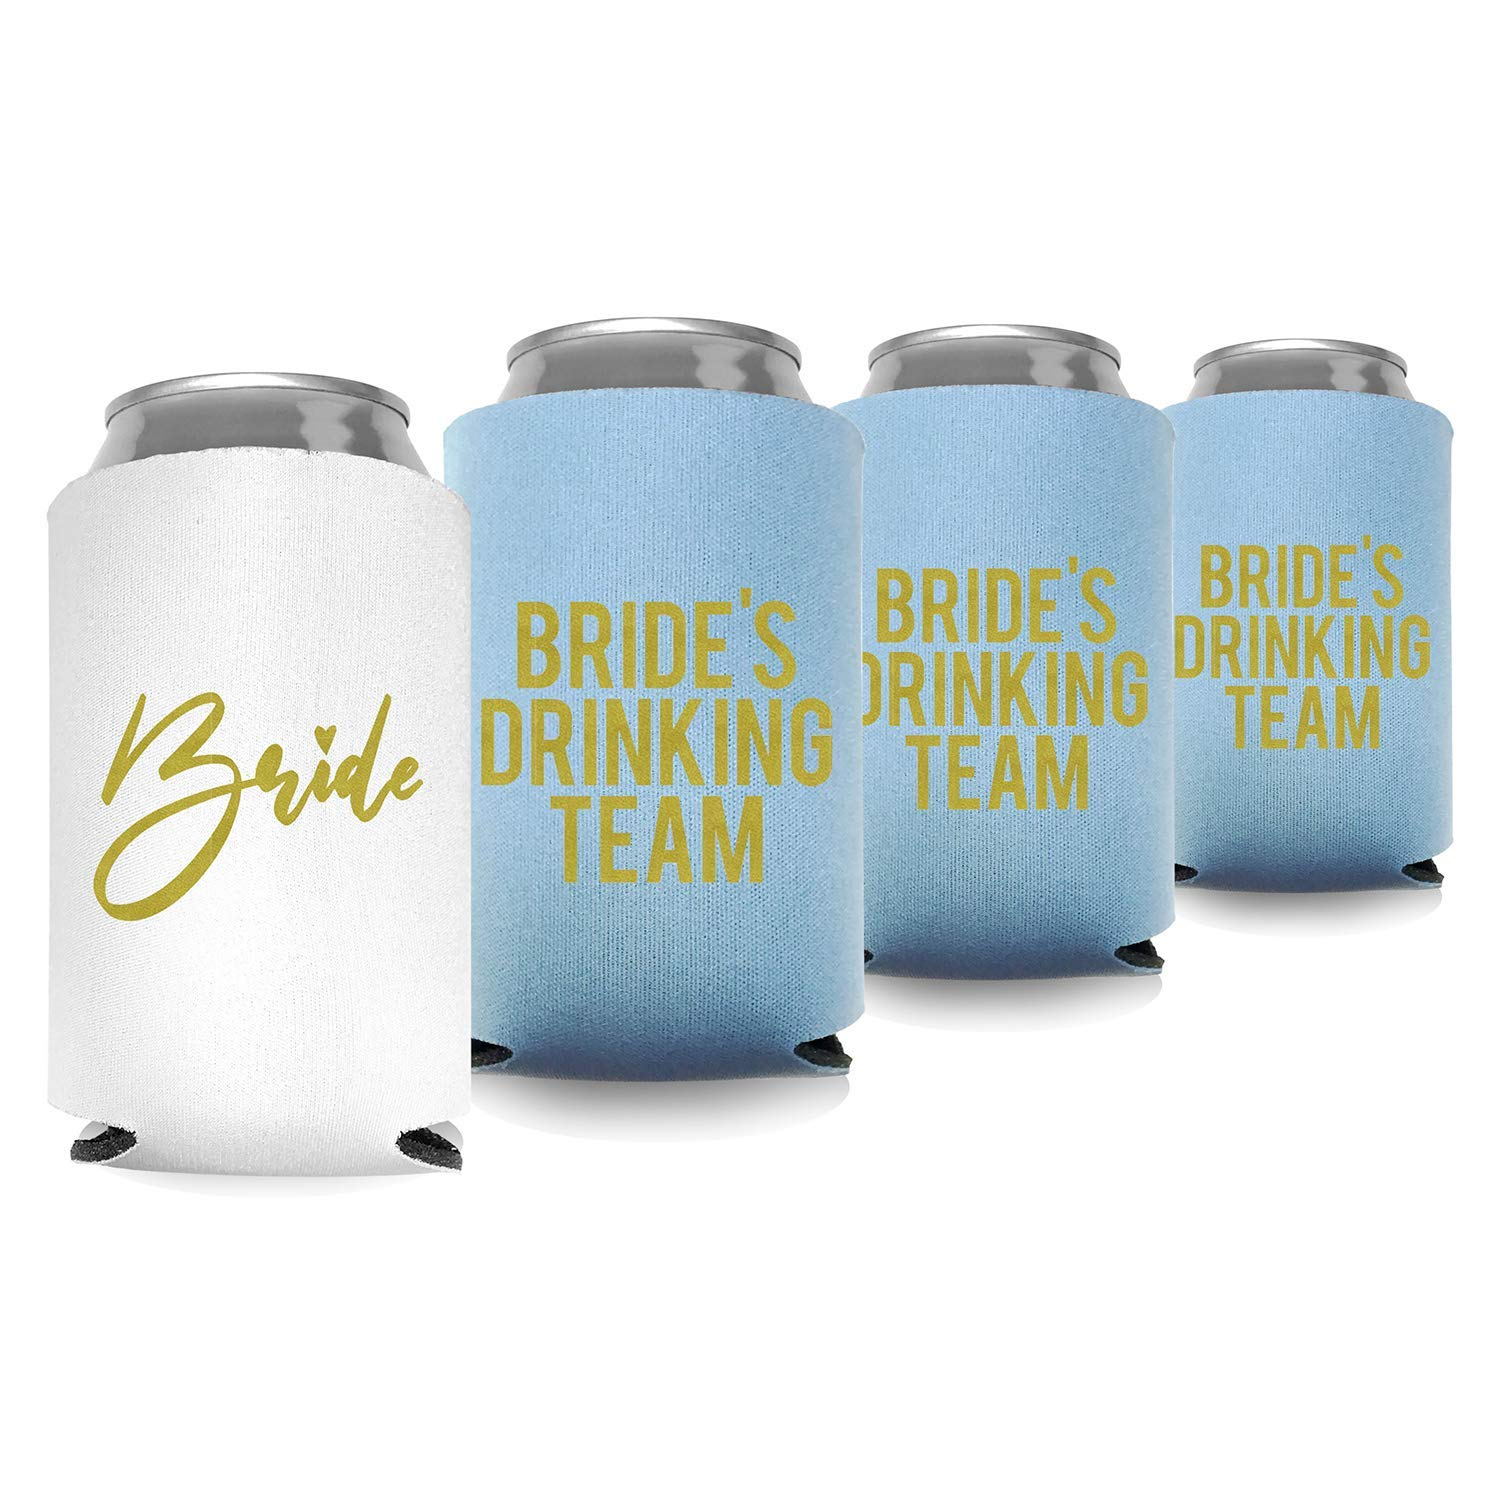 Coolies Can Coolers Insulated Collapsible Beer Soft Drinks Bottle Soda Can Sleeves (Bride & Bride Drinking Team) Durable Insulators Premium Quality for Bachelorette Party (Set of 24) White and Blue